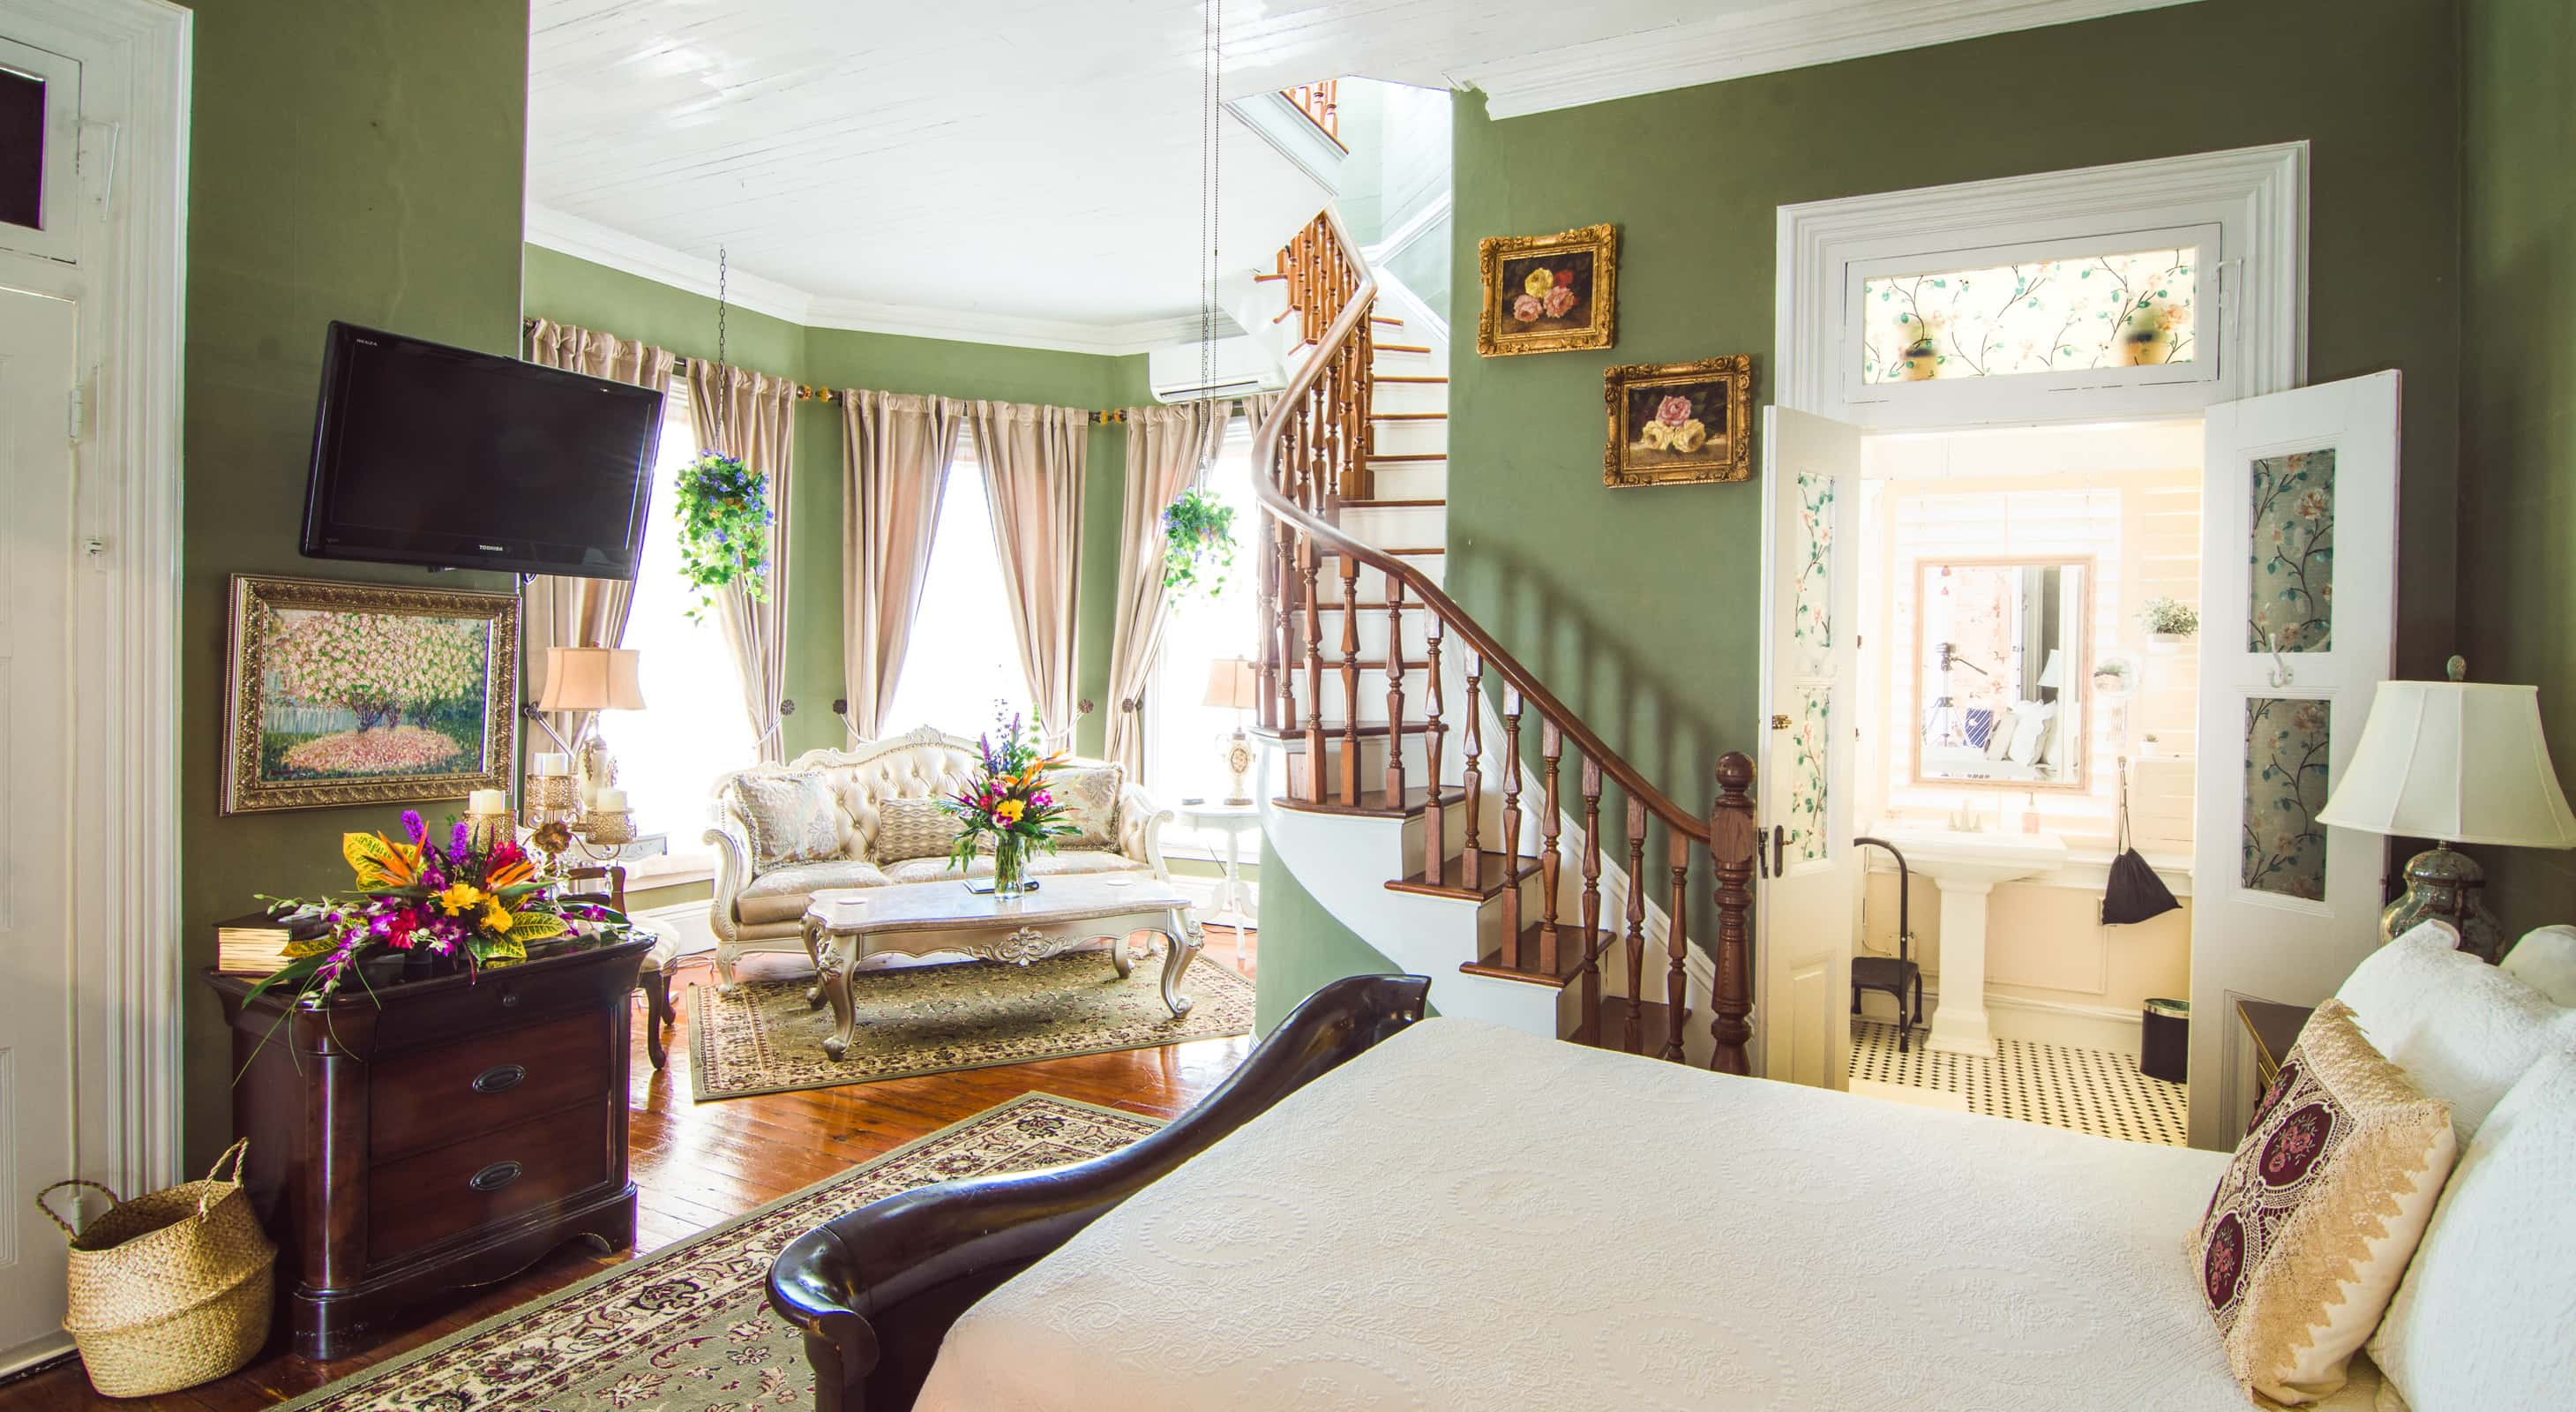 Turret room at our Key West Bed and Breakfast